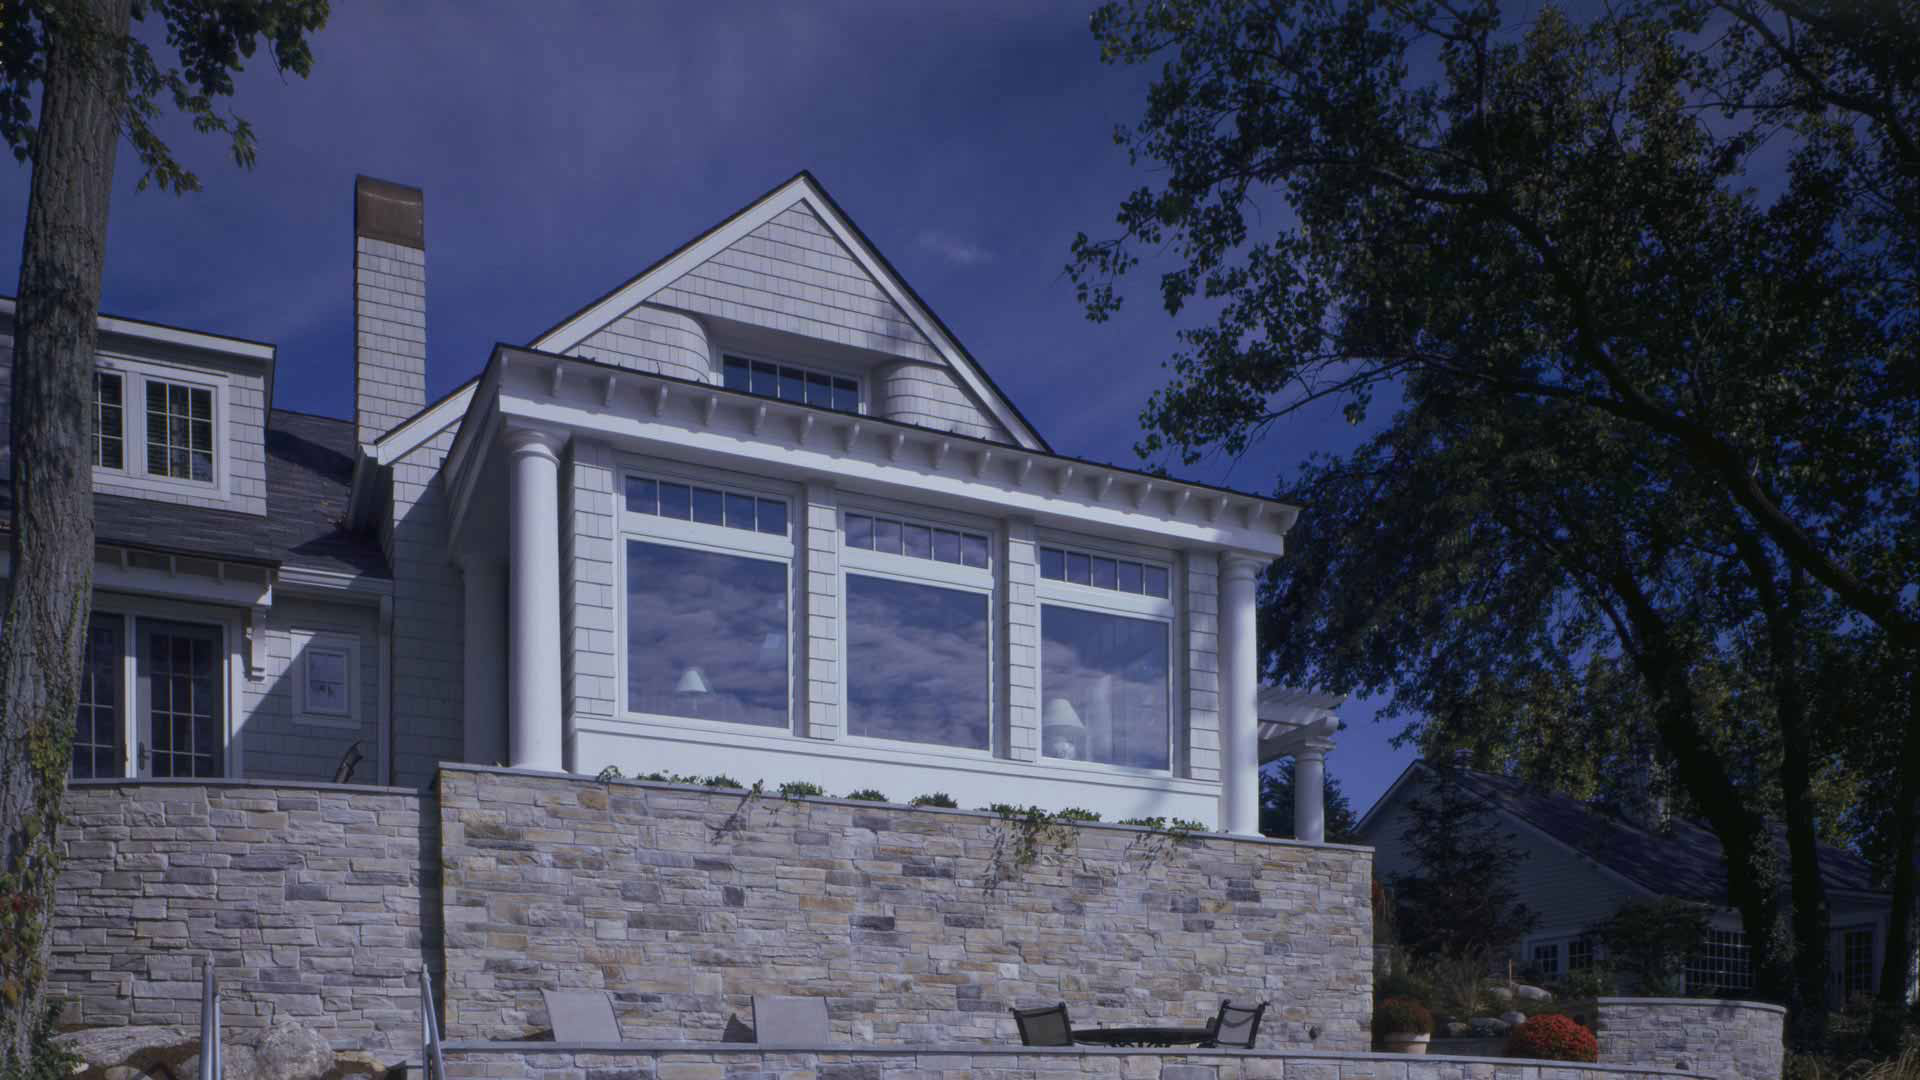 Nantucket Bay Shingle Style - Lakefront Facade - HAUS Architecture, Christopher Short, Indianapolis Architect